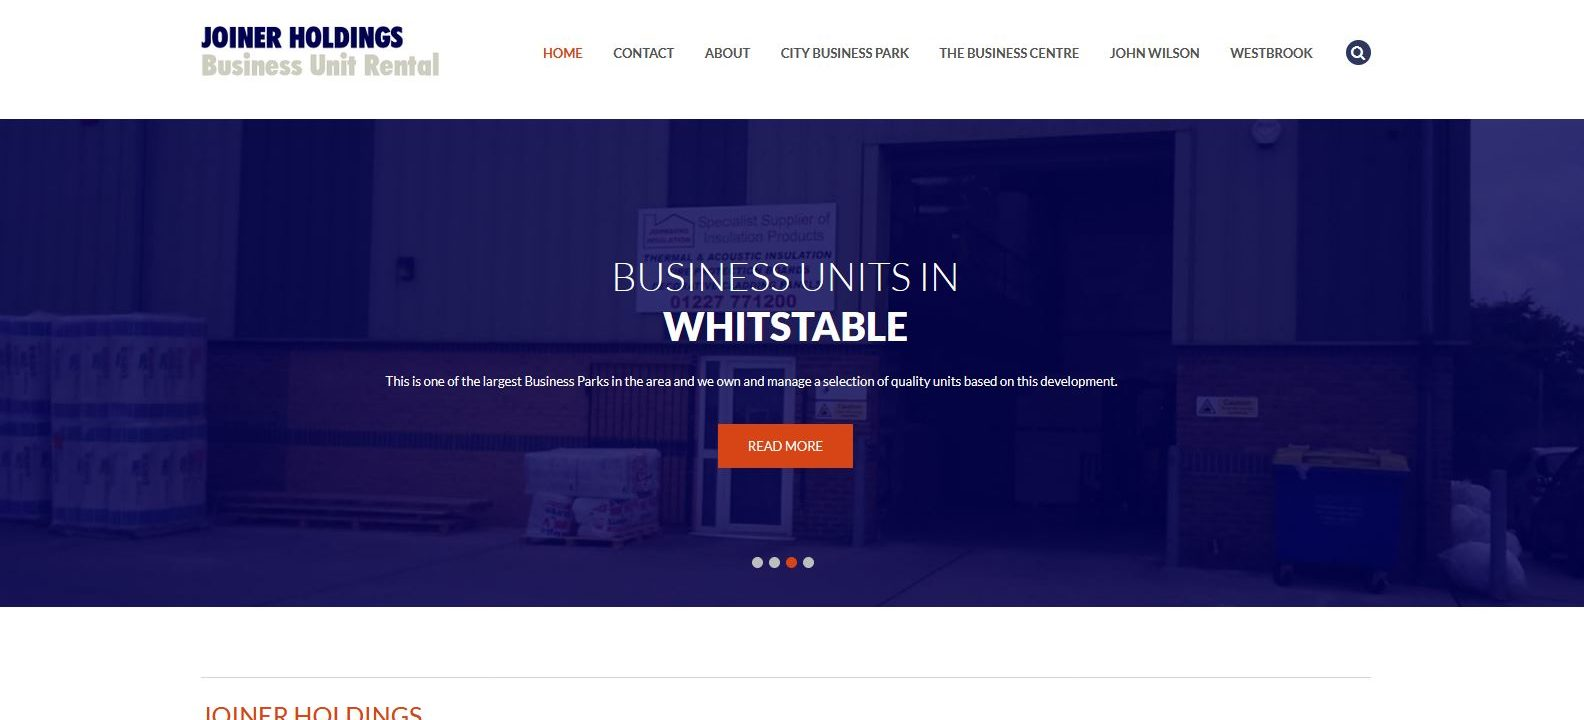 joiner holdings website design home page